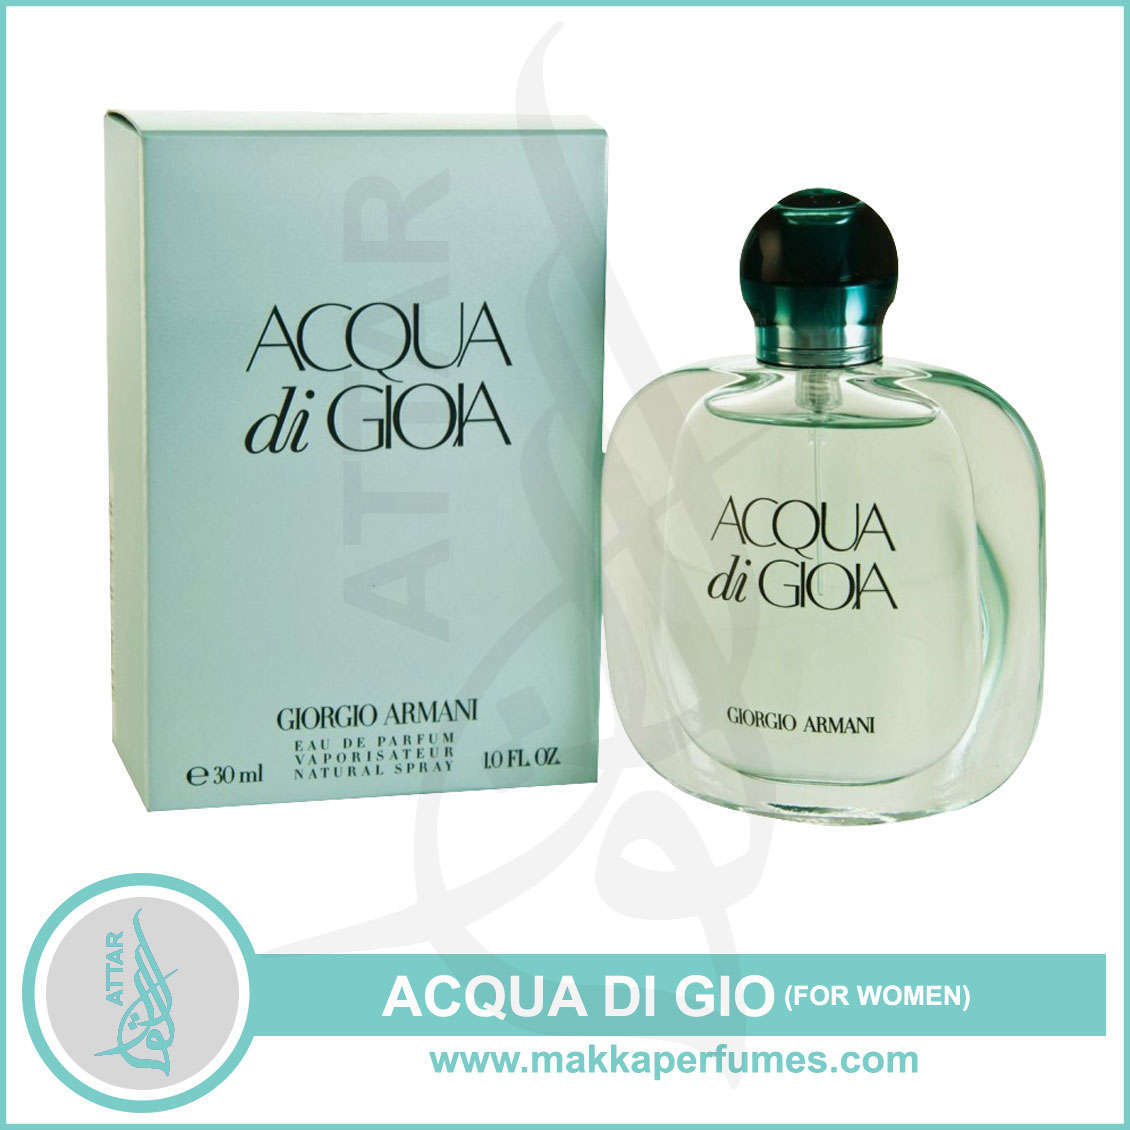 Acqua Di Gio By Giorgio Armani 12ml Cpo Attar Shop Pakistan